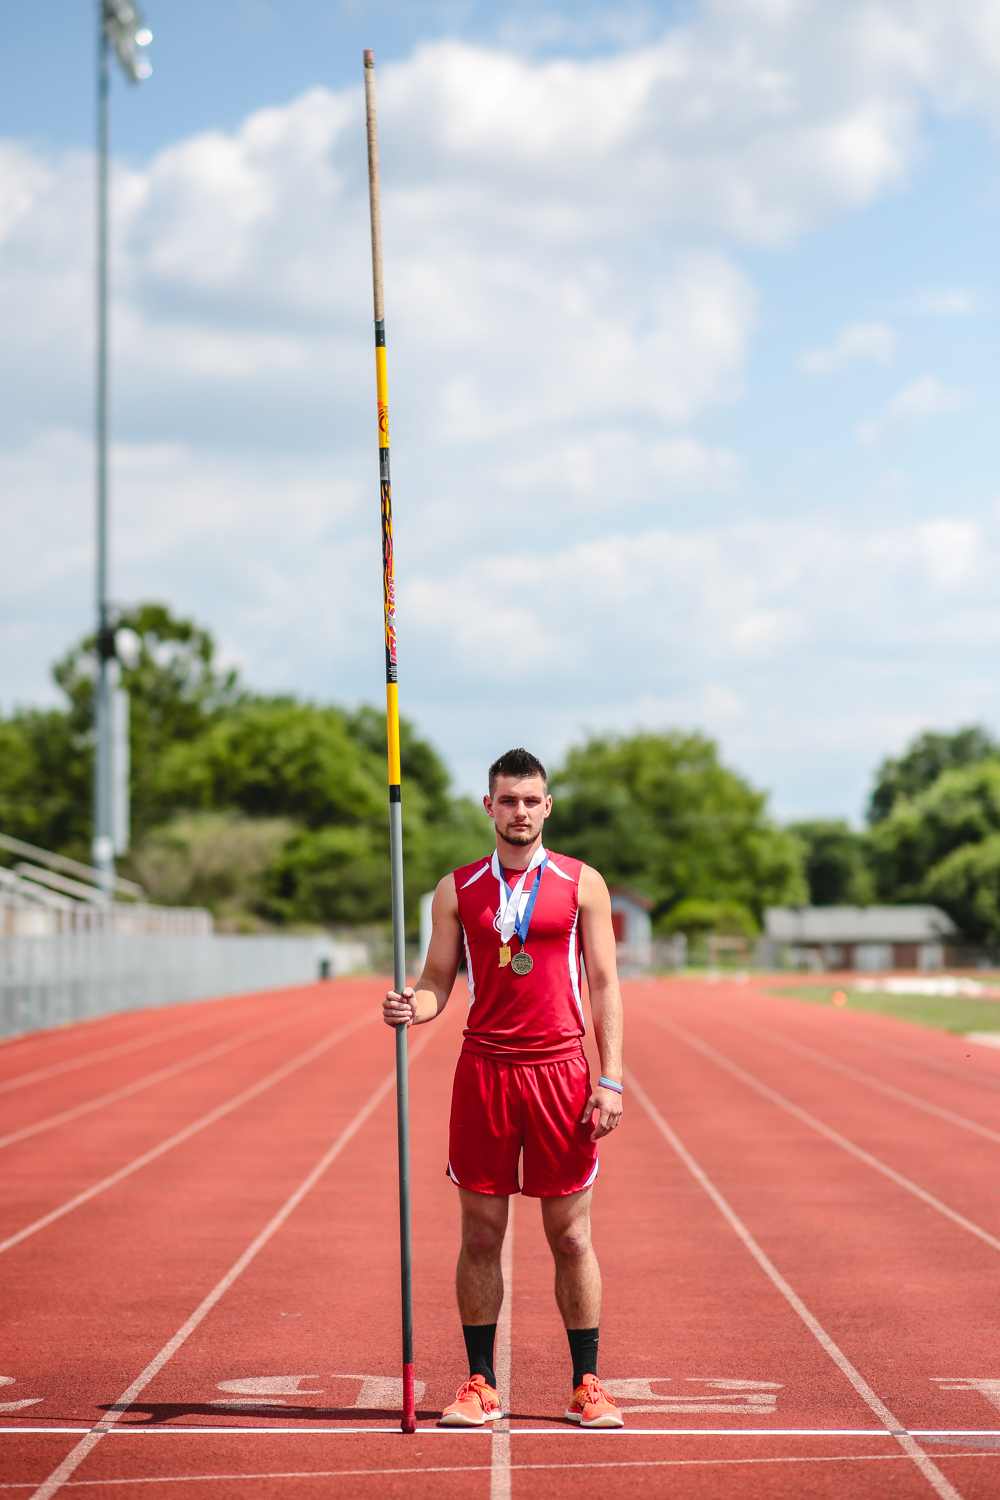 The Pole Vaulter